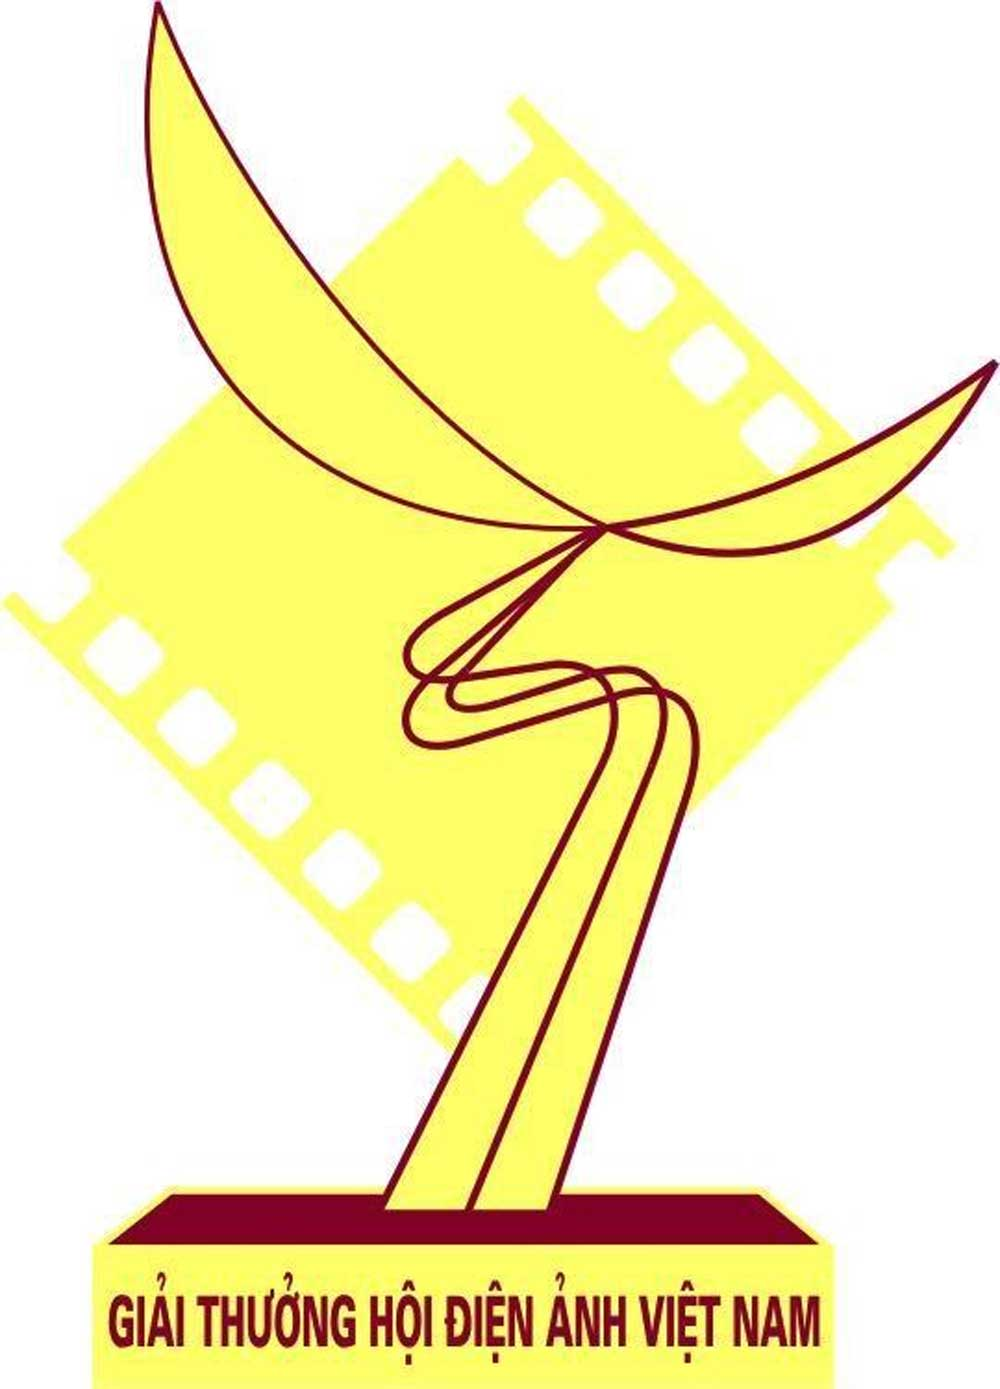 2020 Golden Kite Awards, Covid-19 pandemic,  physical distancing measures, Vietnam Cinematography Association, awards ceremony